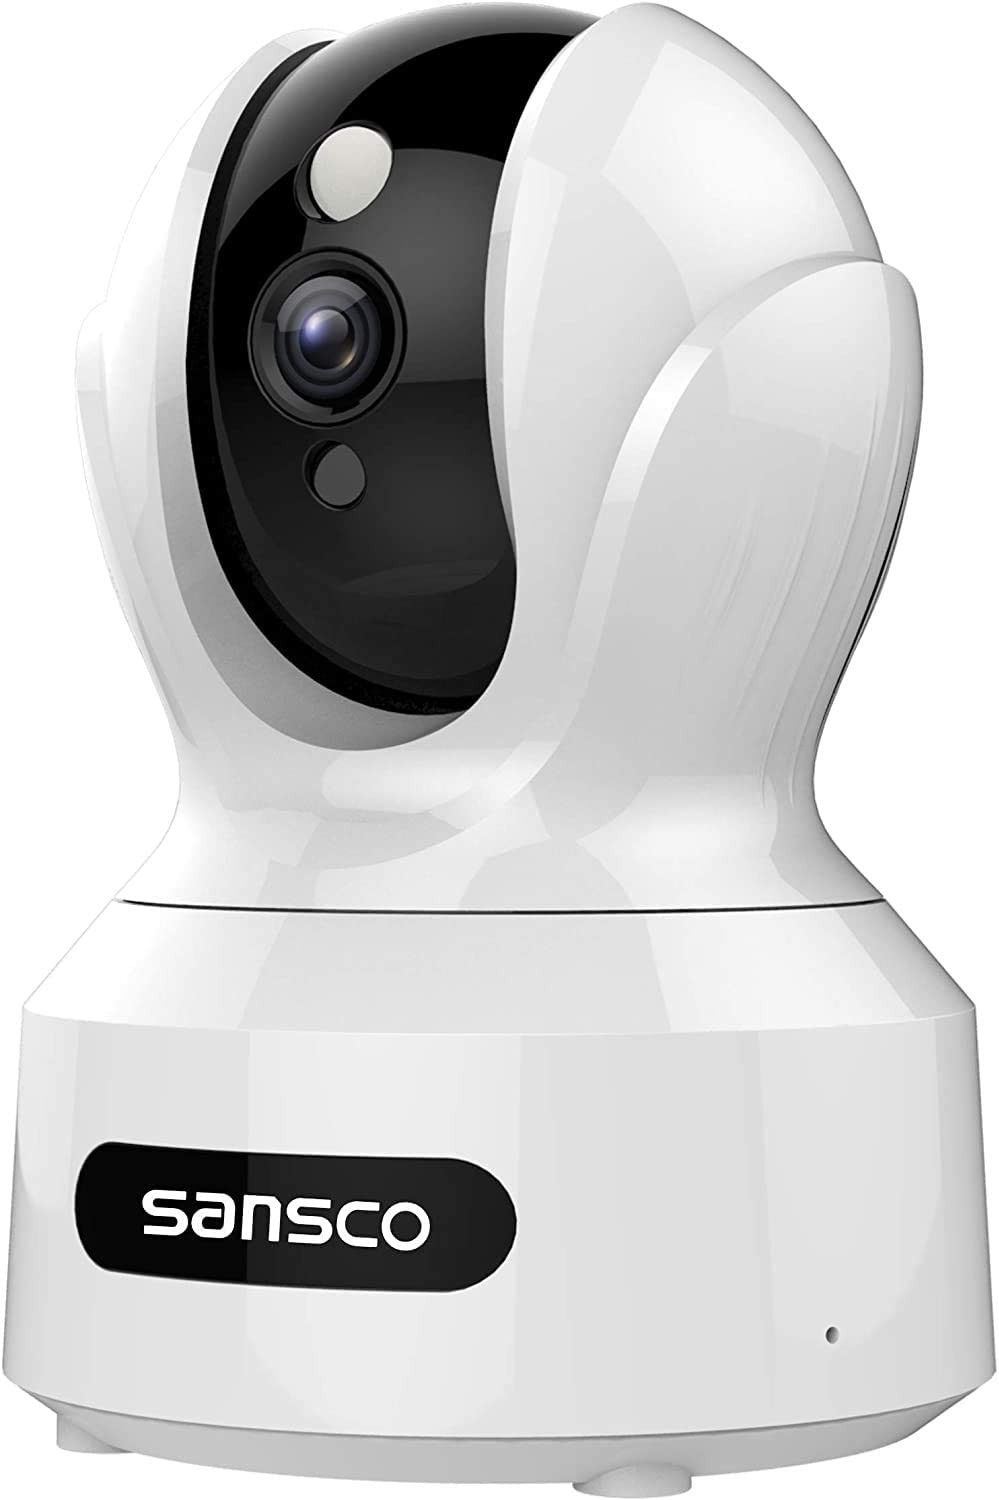 SANSCO Indoor Wireless WiFi Security Camera Full HD 2MP 1080p Home Monitor Surveillance Network IP Camera for Pet/Baby with IR Night Vision, Motion Detection Push Alerts and Two-Way Audio - White